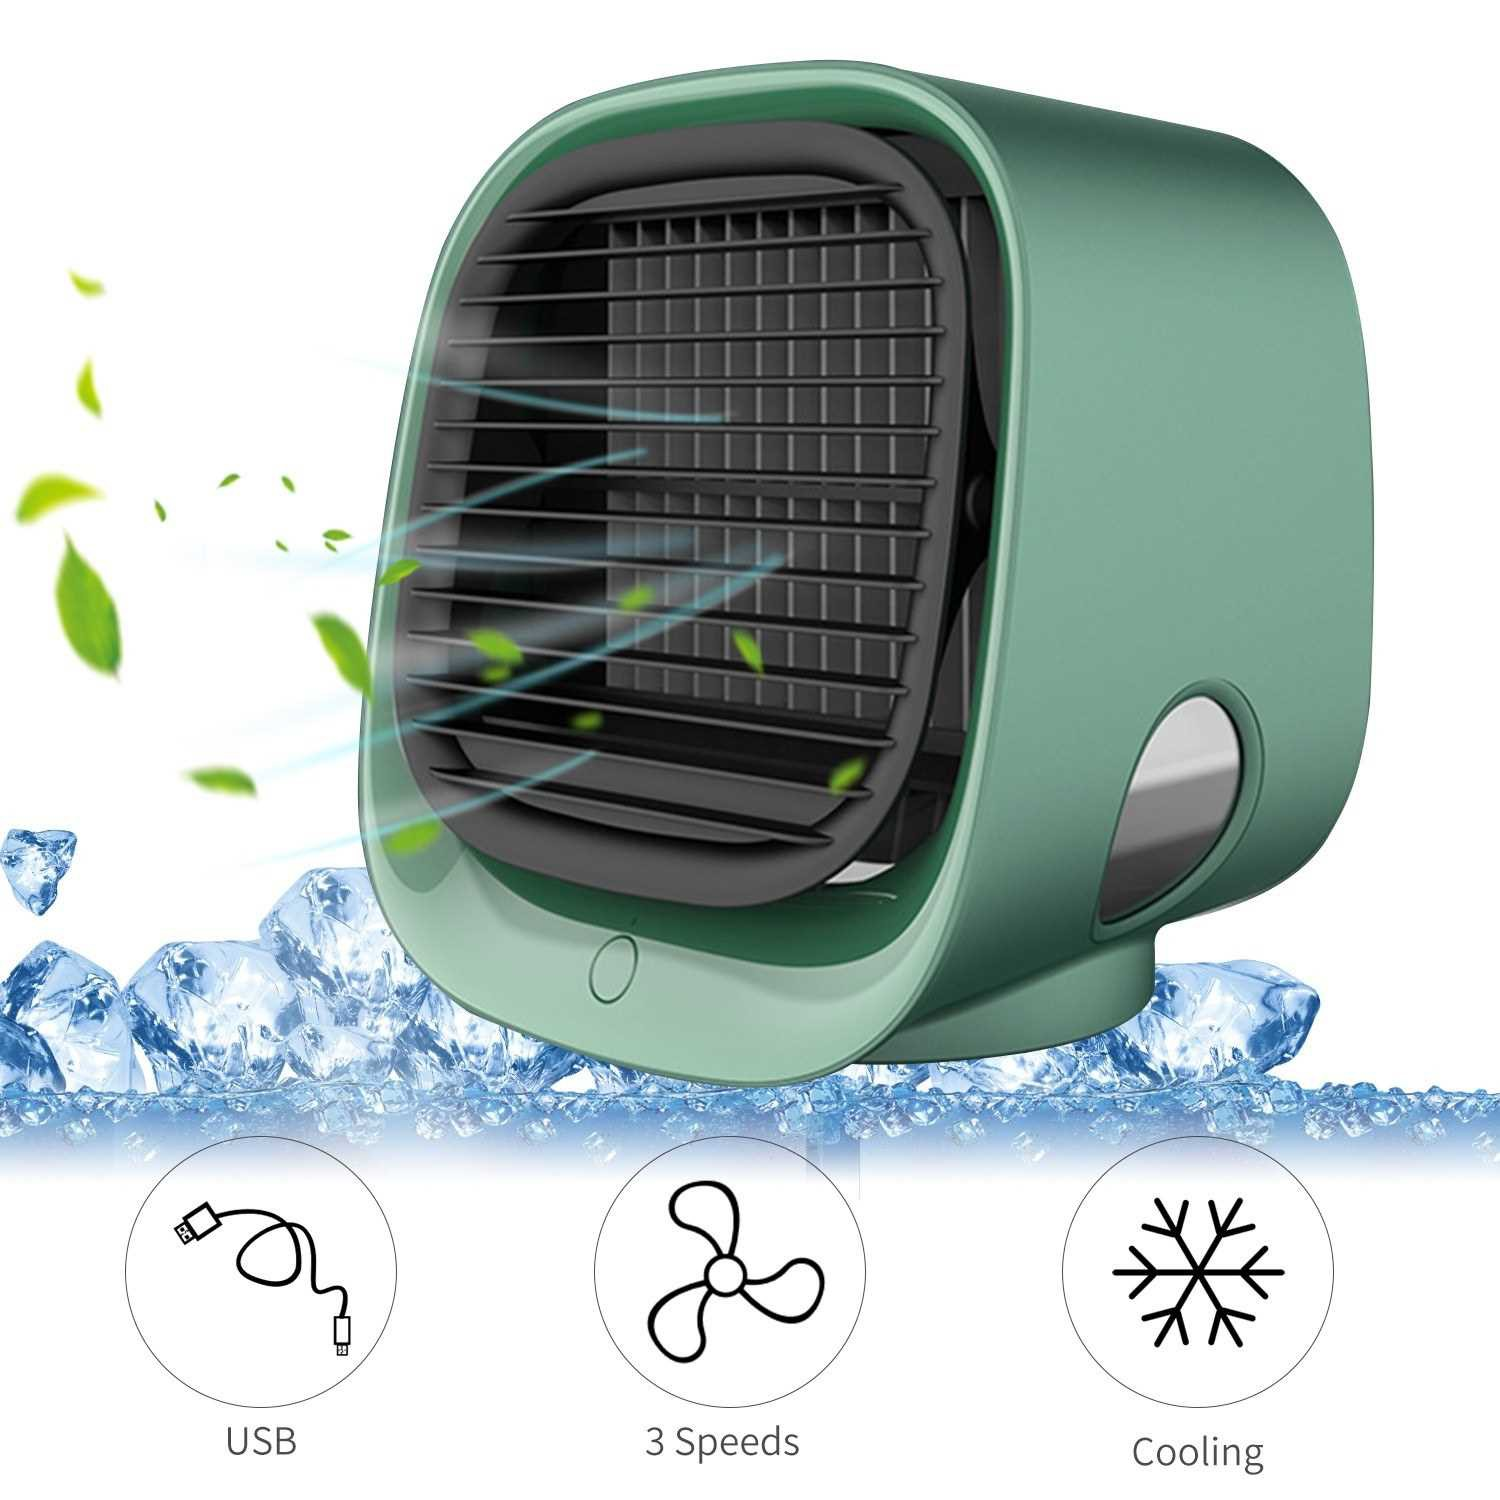 300mL Desktop Air Cooler Air Conditioner Fan Small Personal USB Desk Fan Air Cooler 3 Speeds Cooling Fan for Home Room